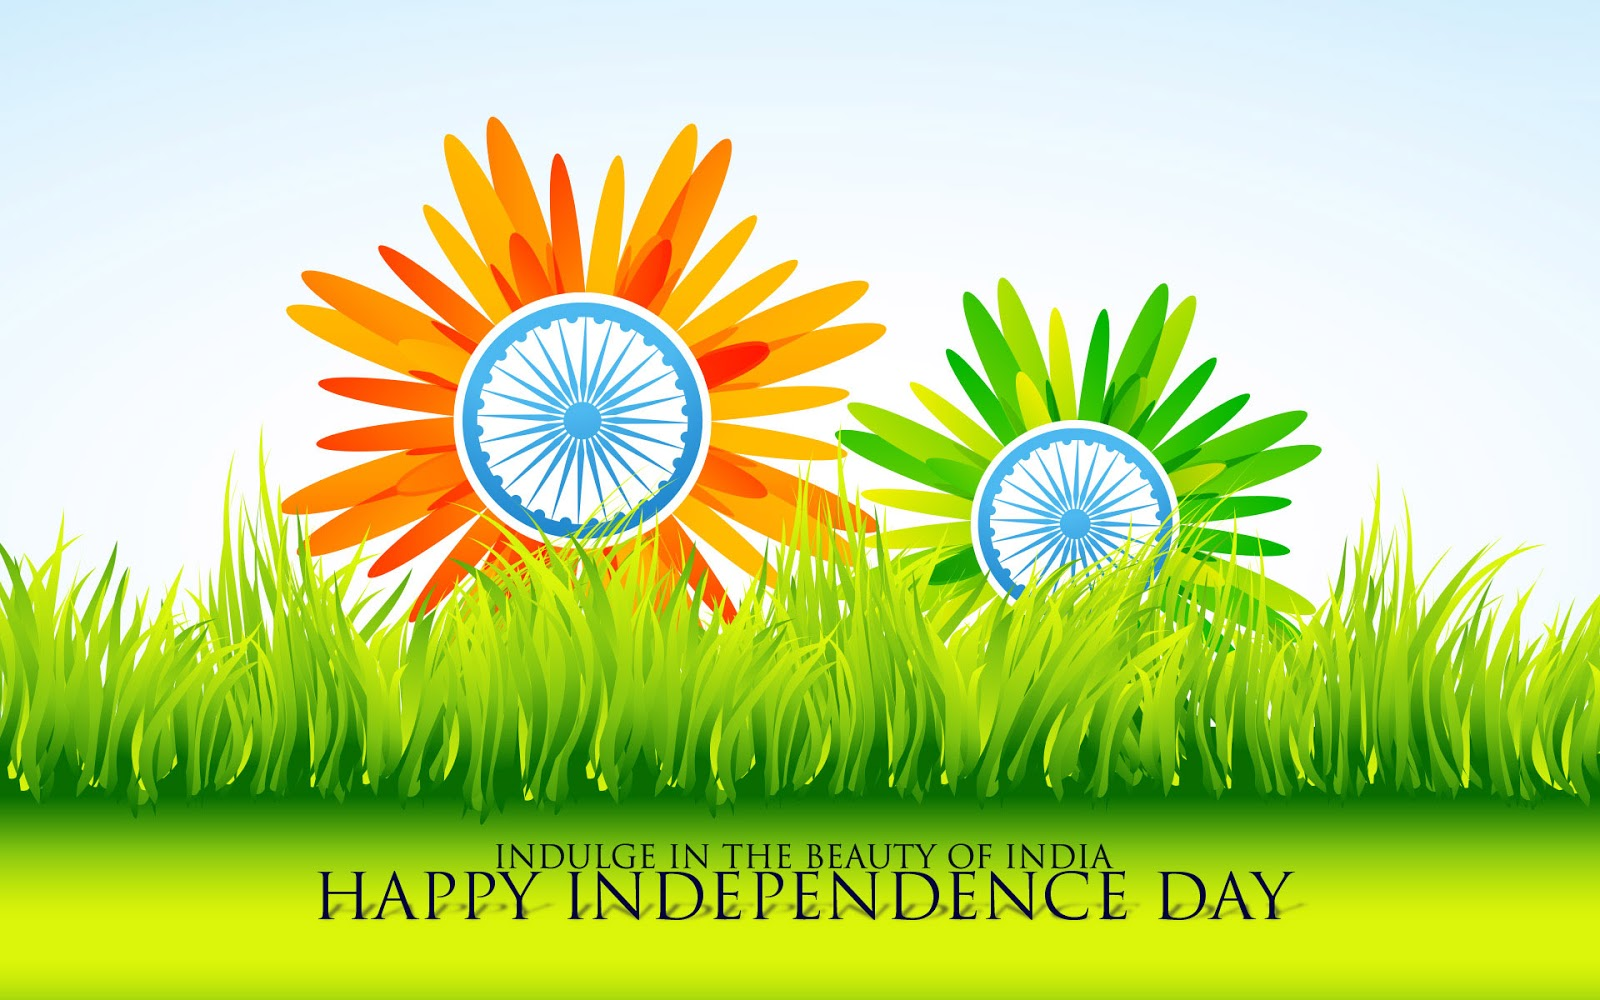 happy independence day greetings greetings happy independence day greetings 2016 15 greetings